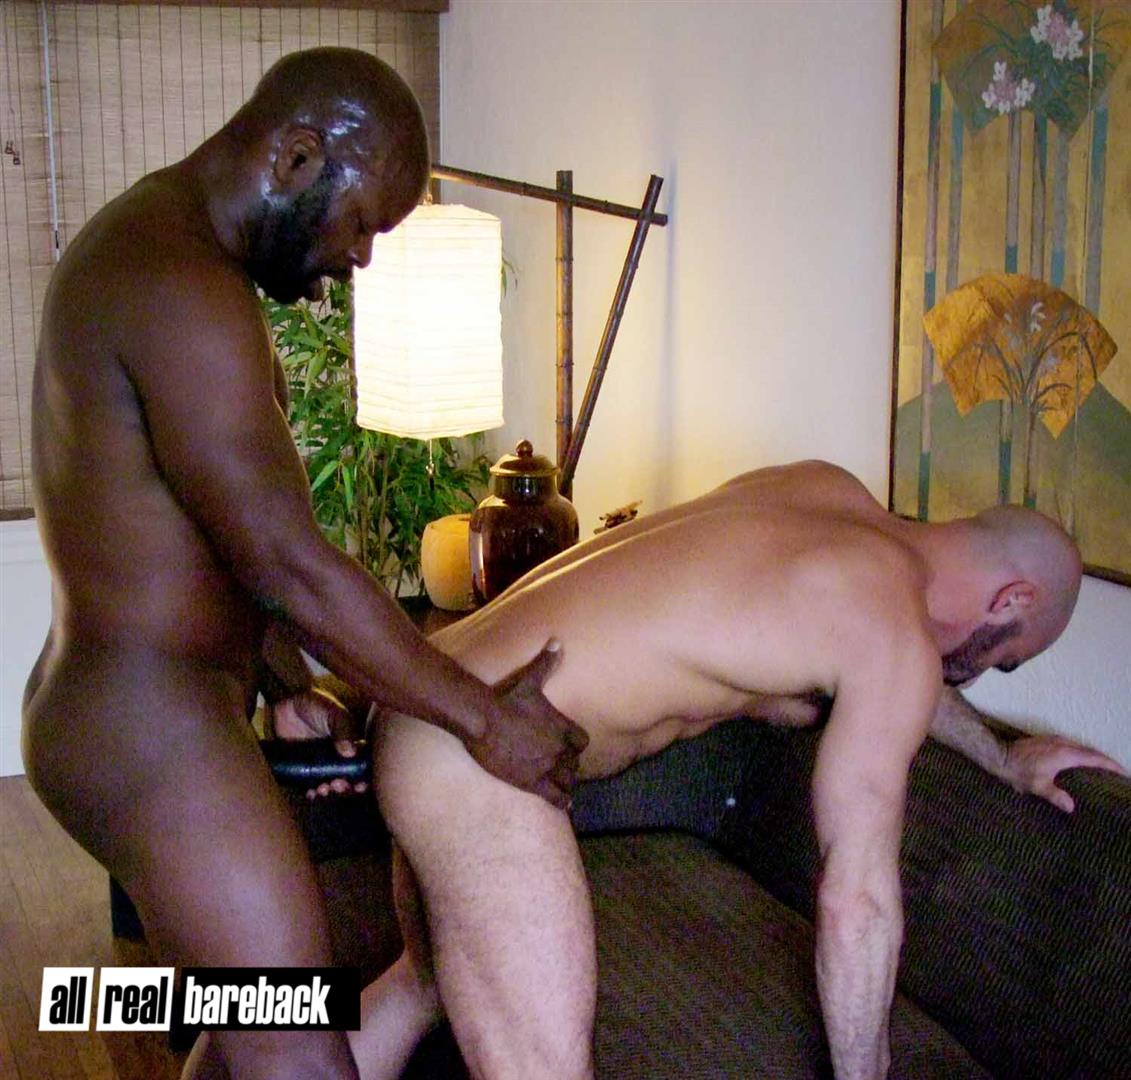 All Real Bareback Cutler X and Adam Russo Real Life Boyfriends Barebacking Amateur Gay Porn 12